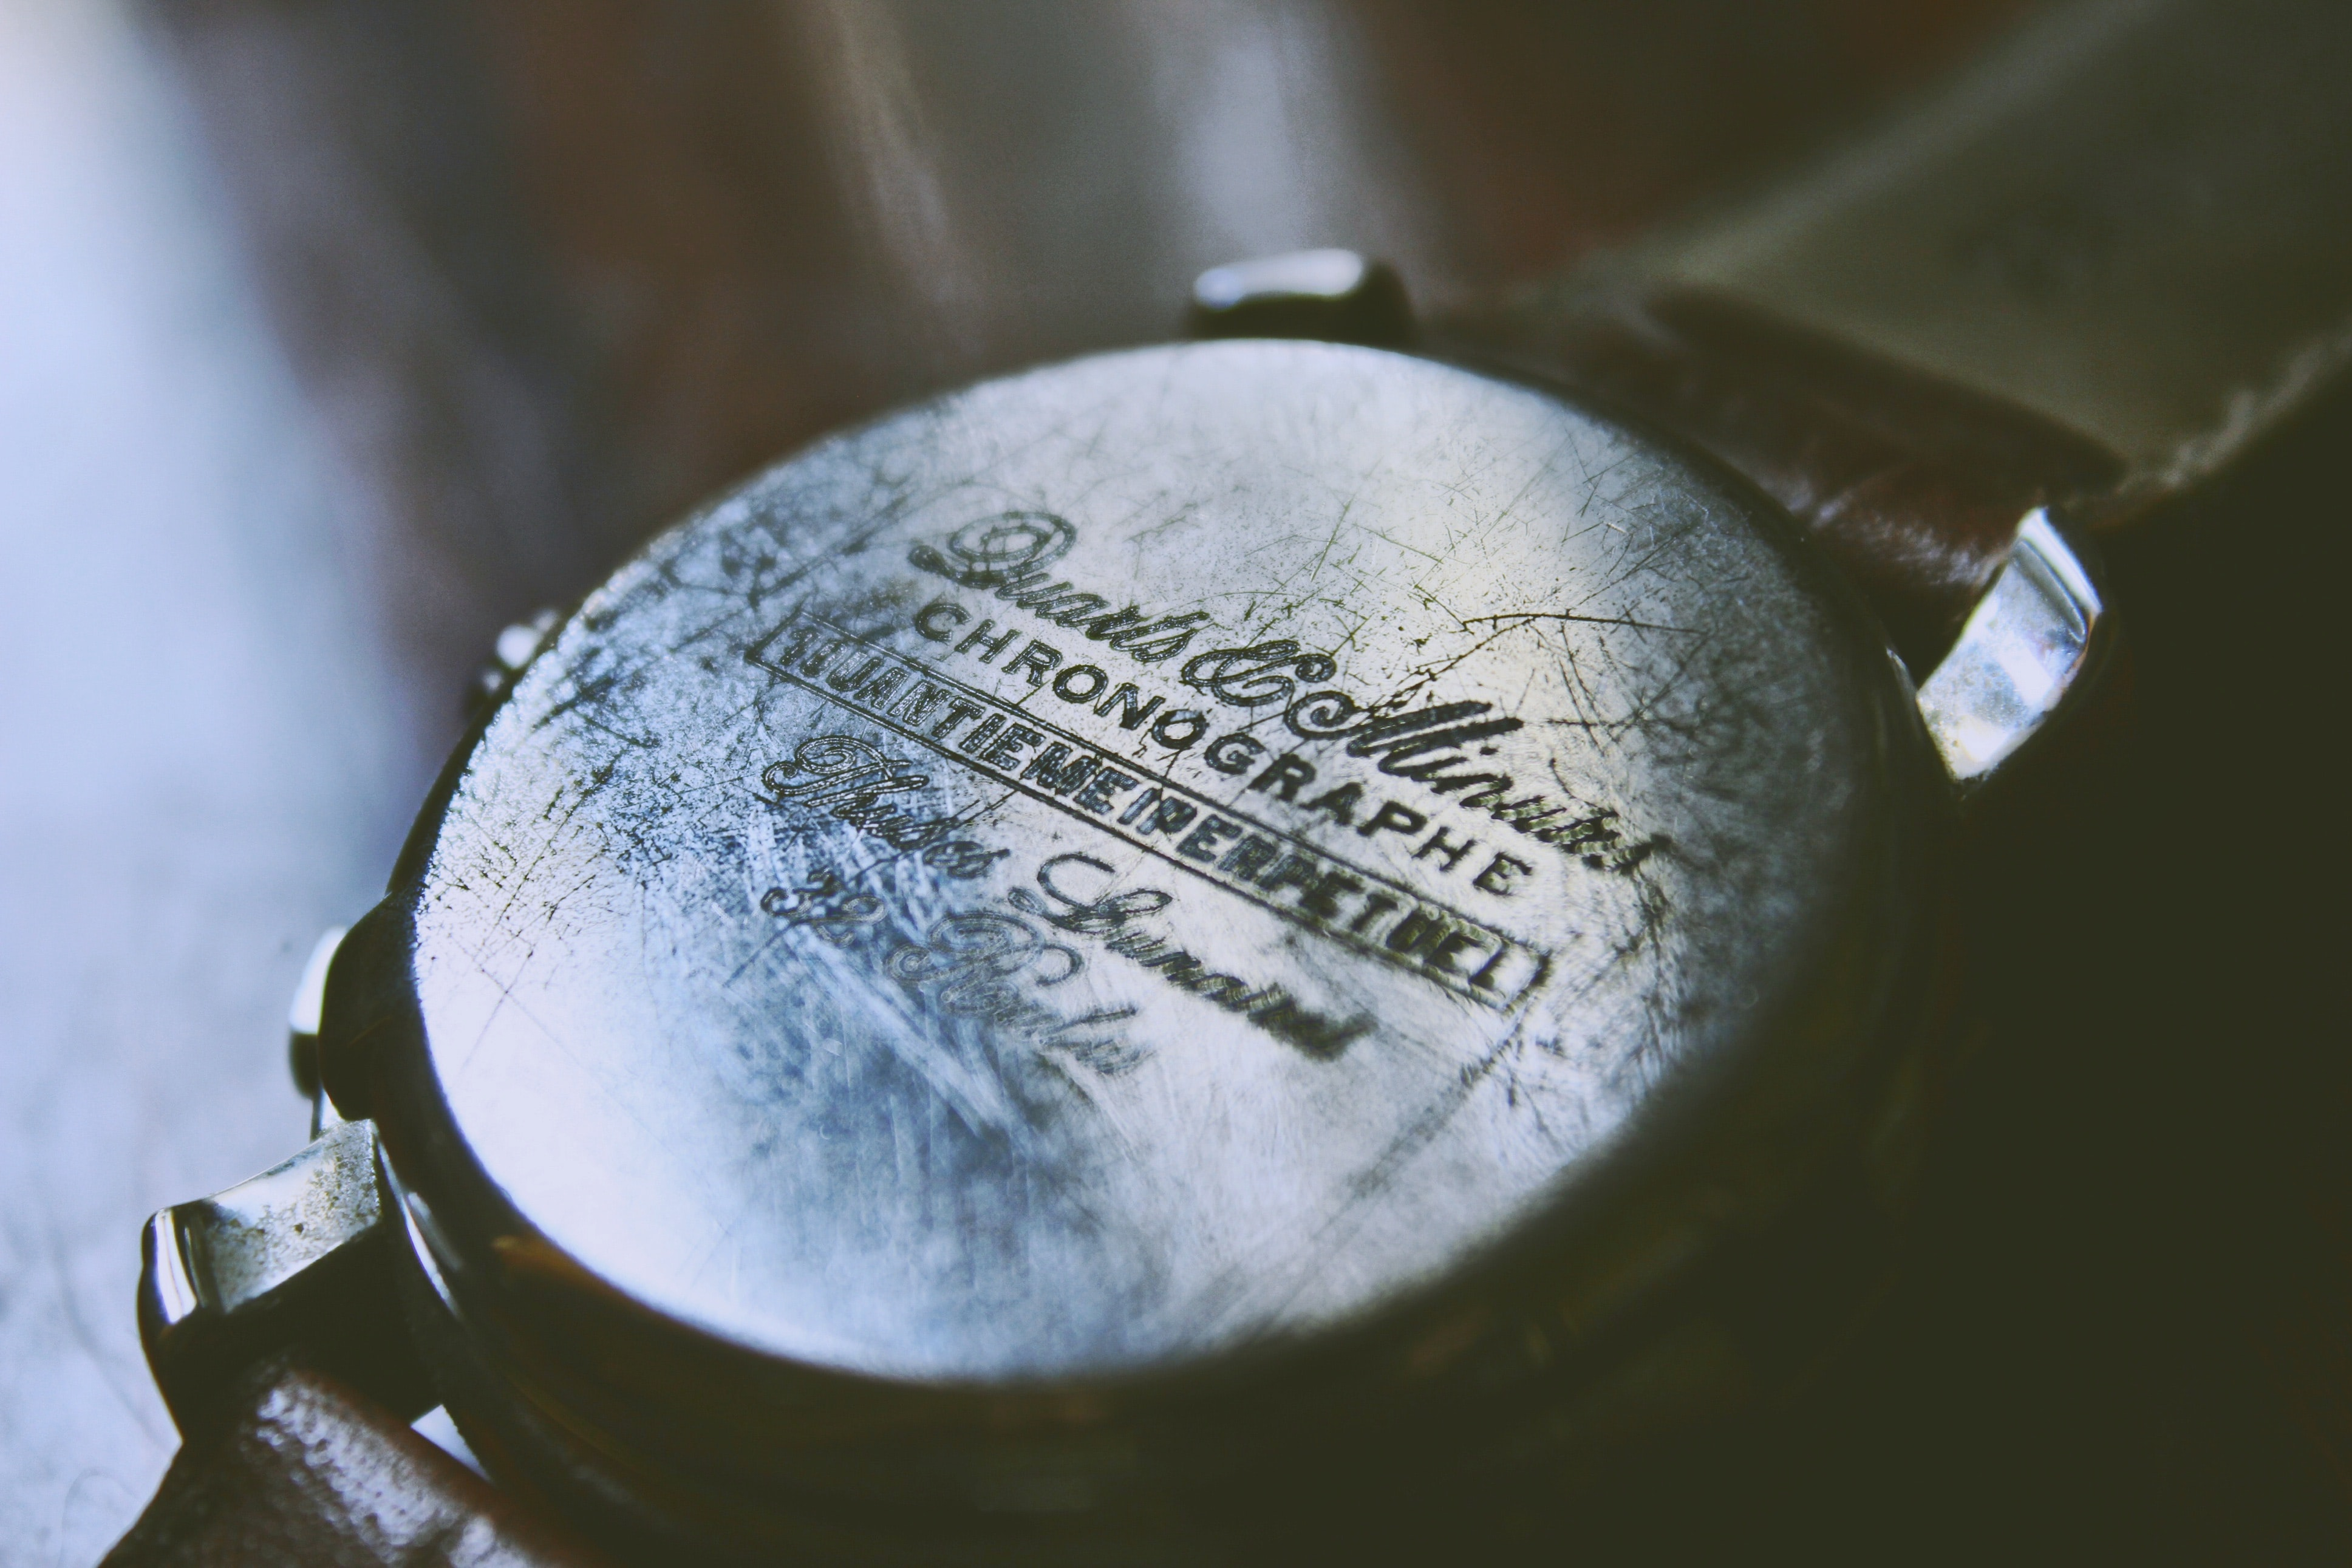 Scuffed back of a vintage wristwatch on a wooden table